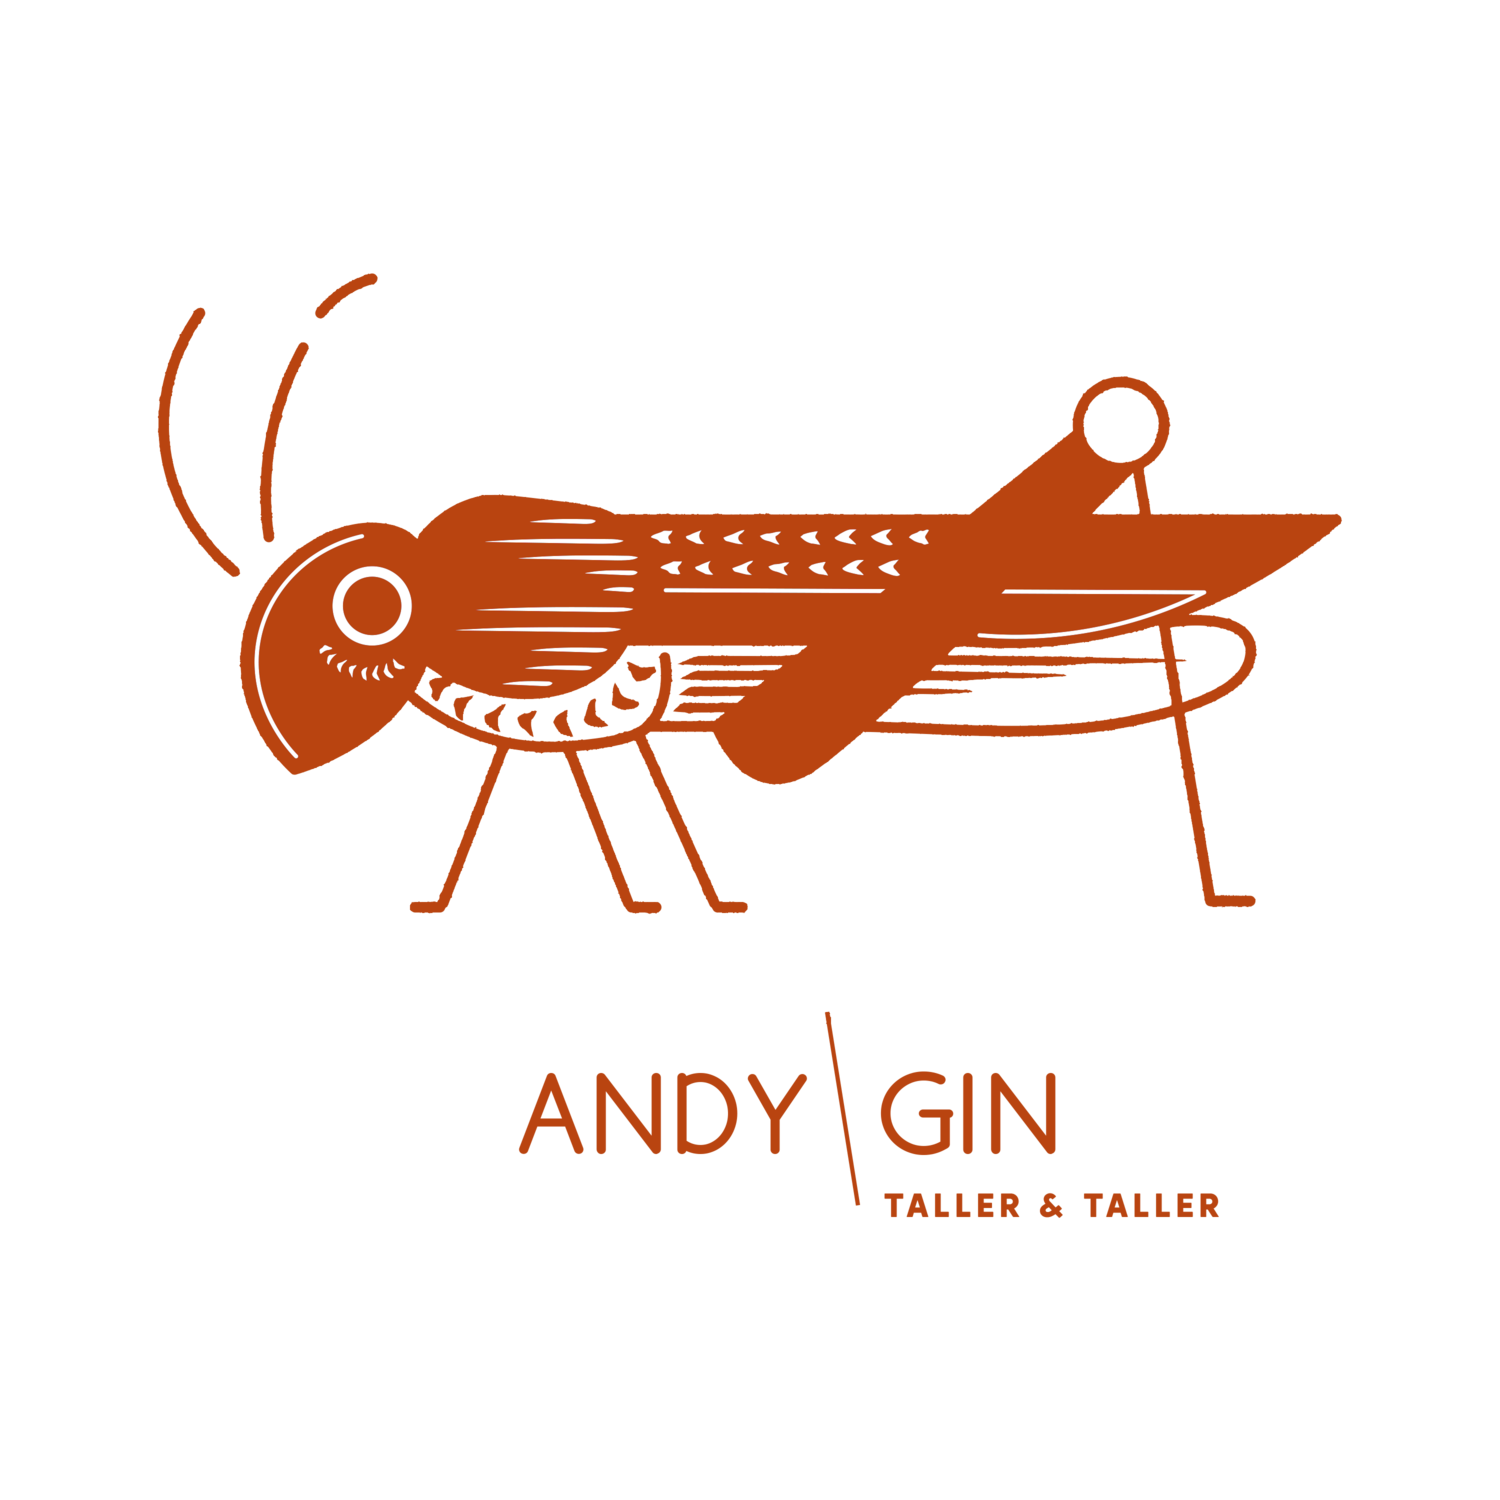 andygin